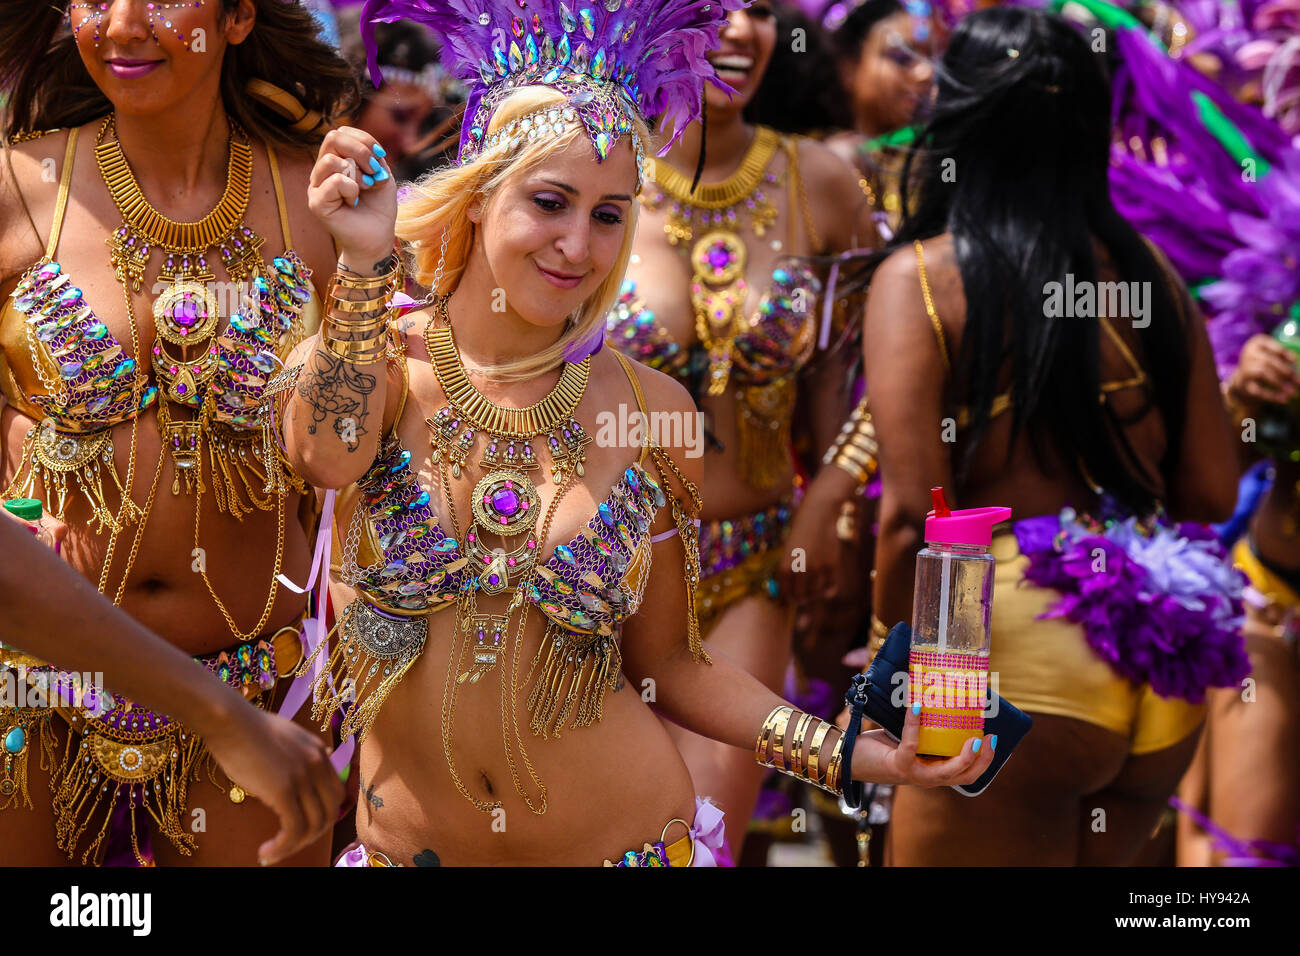 TORONTO, CANADA - JULY 20, 2016: Marchers in costume at The